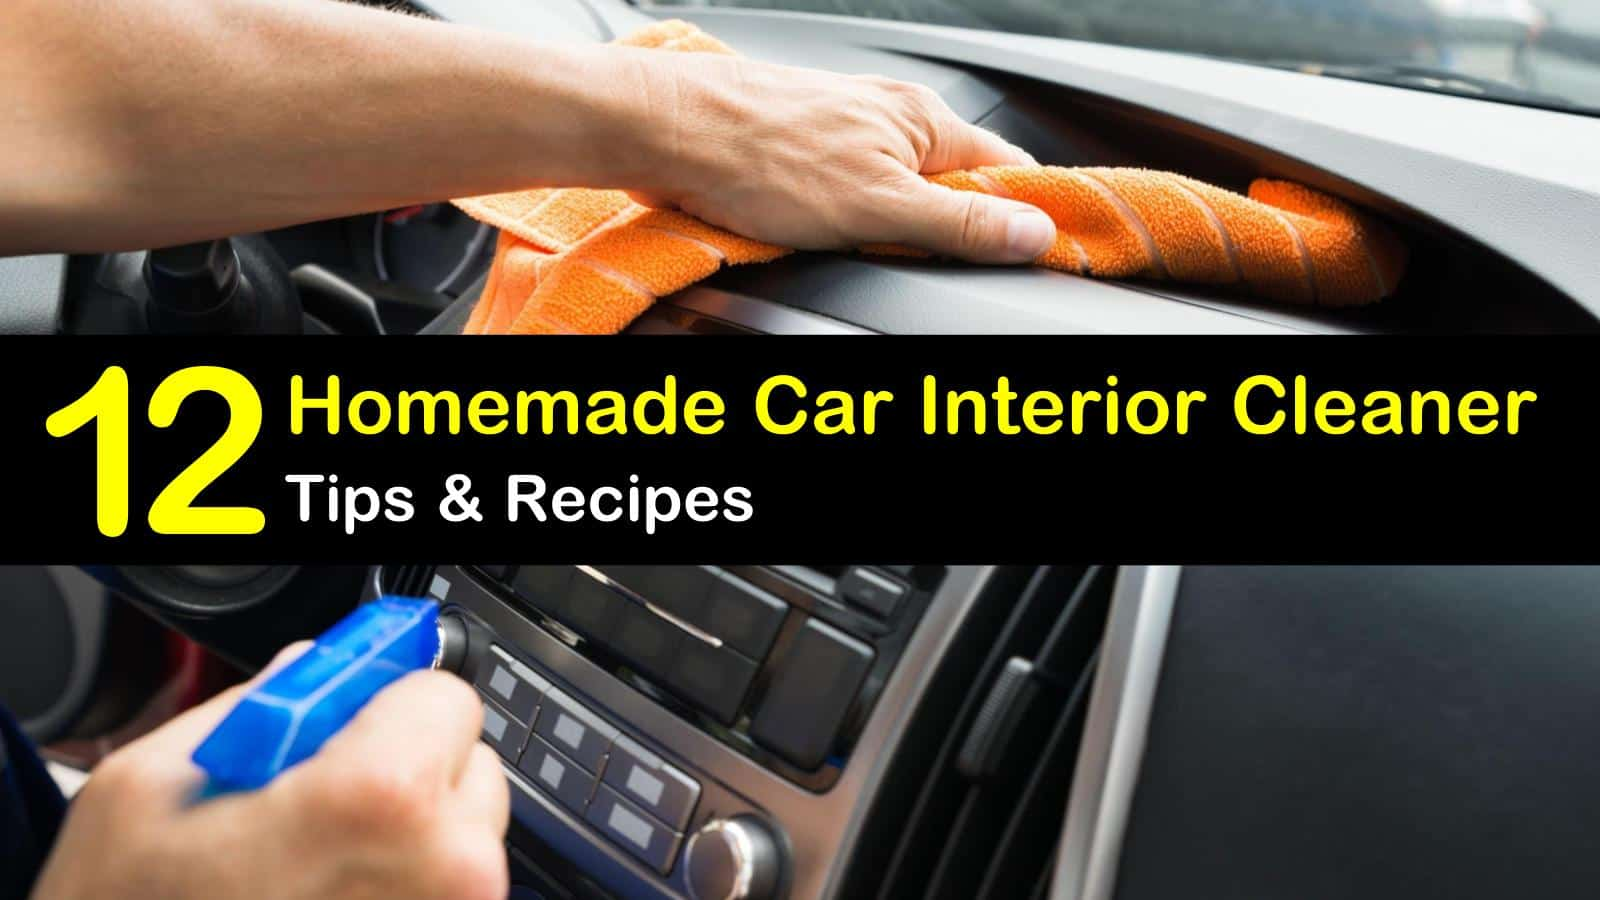 Homemade Car Interior Cleaner Recipes 12 Tips For Cleaning Dashboard Windows And Seats